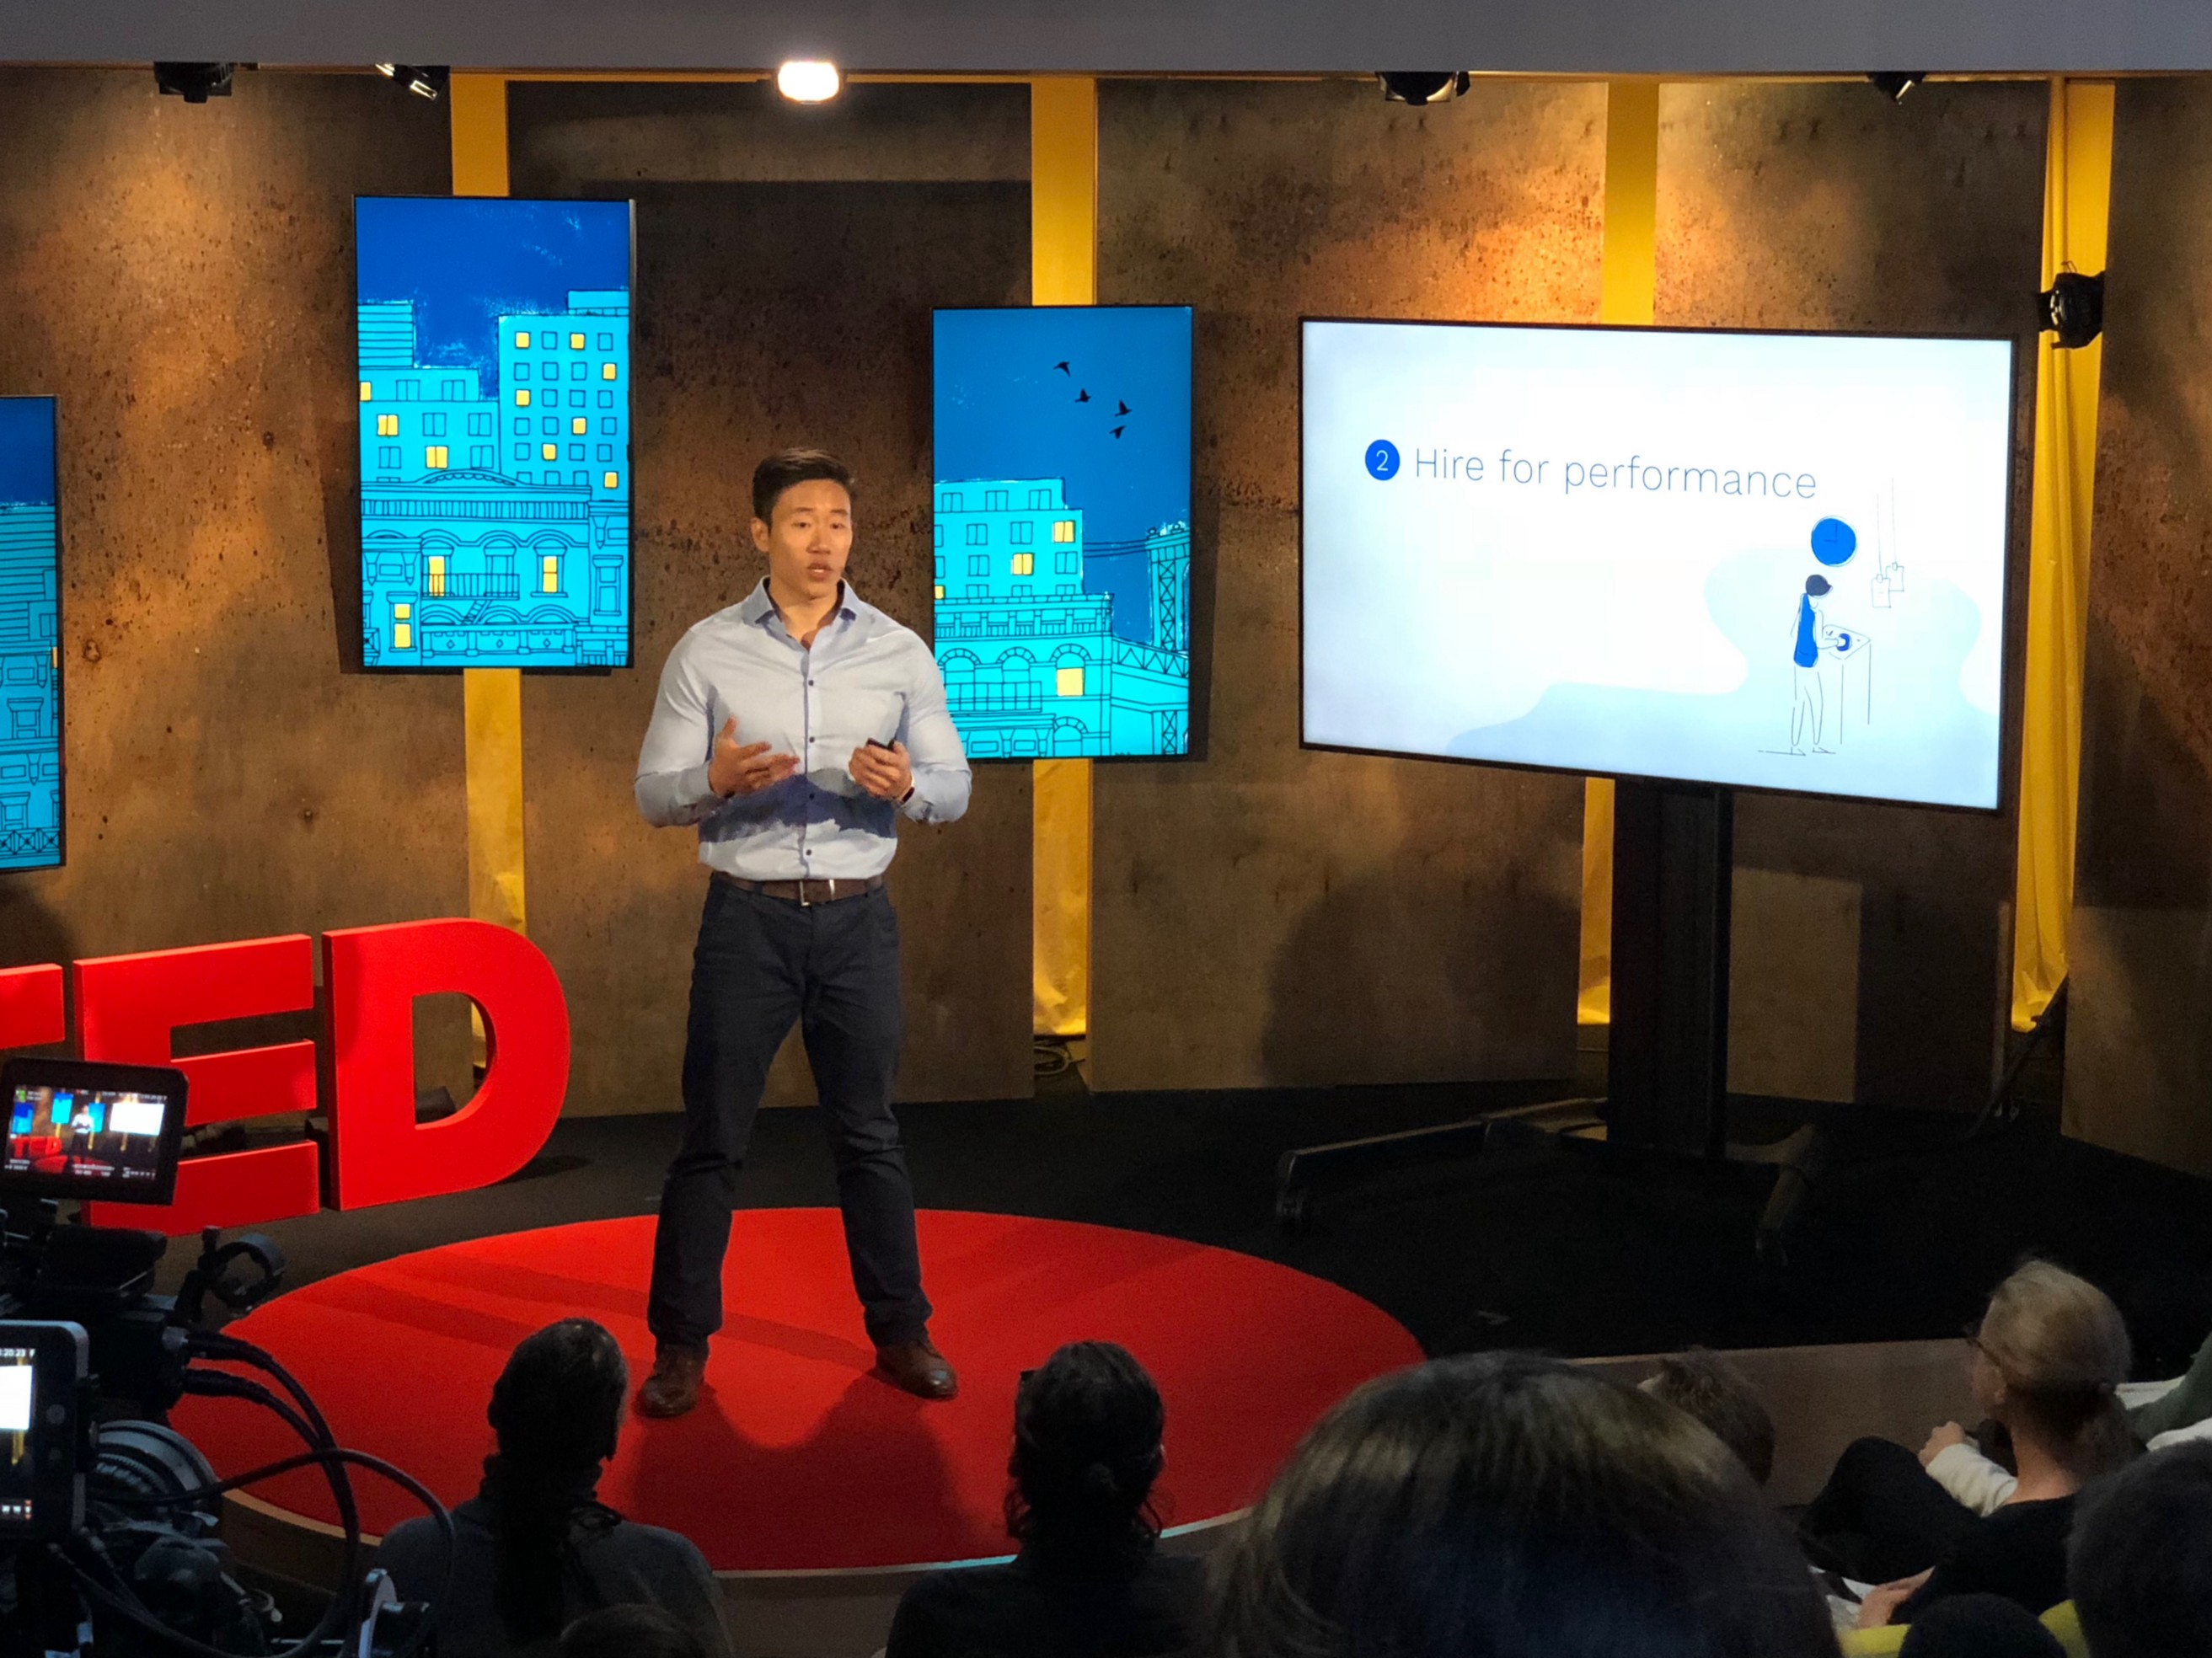 How to Dramatically Improve your Public Speaking Skills